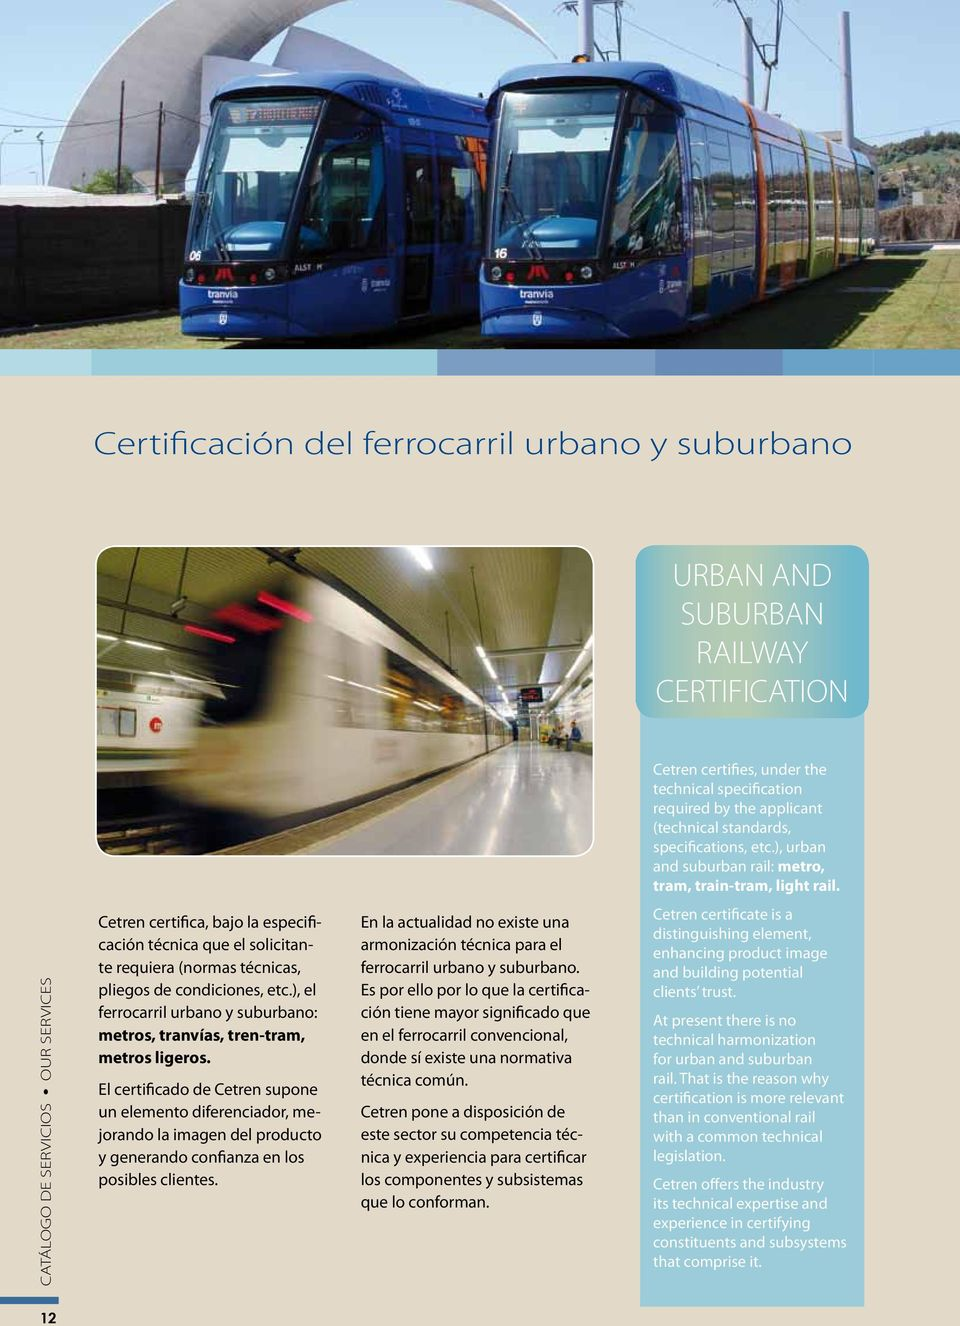 At present there is no technical harmonization for urban and suburban rail. That is the reason why certification is more relevant than in conventional rail with a common technical legislation.